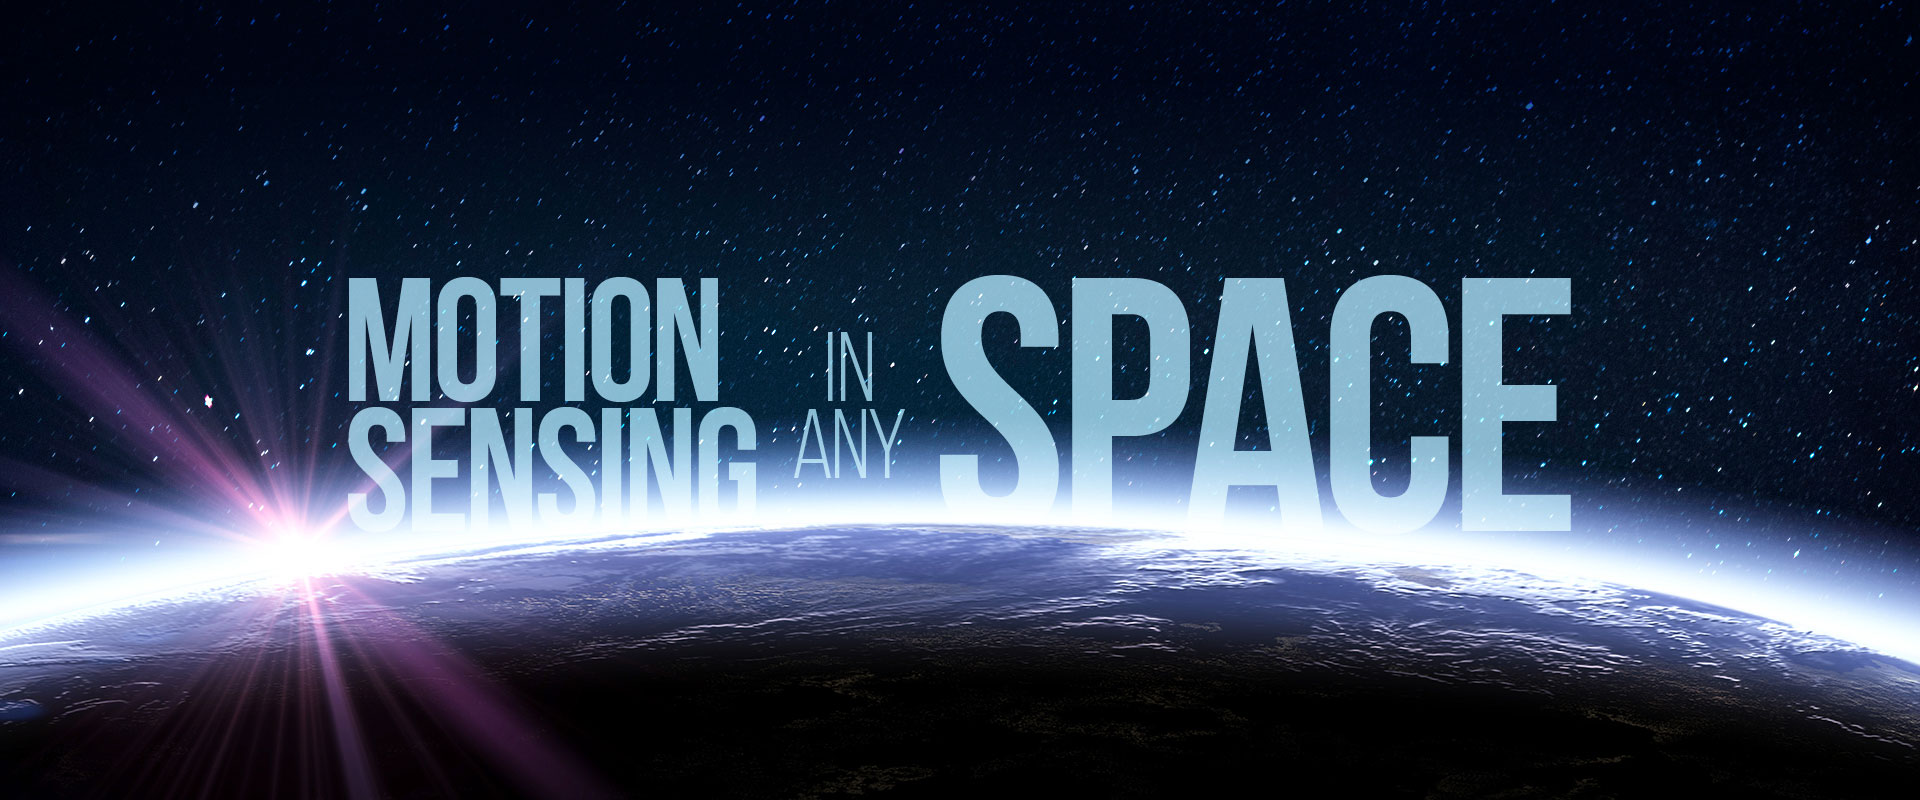 Silicon Sensing marketing campaign 2021 design by Ouno Creative, South East England UK